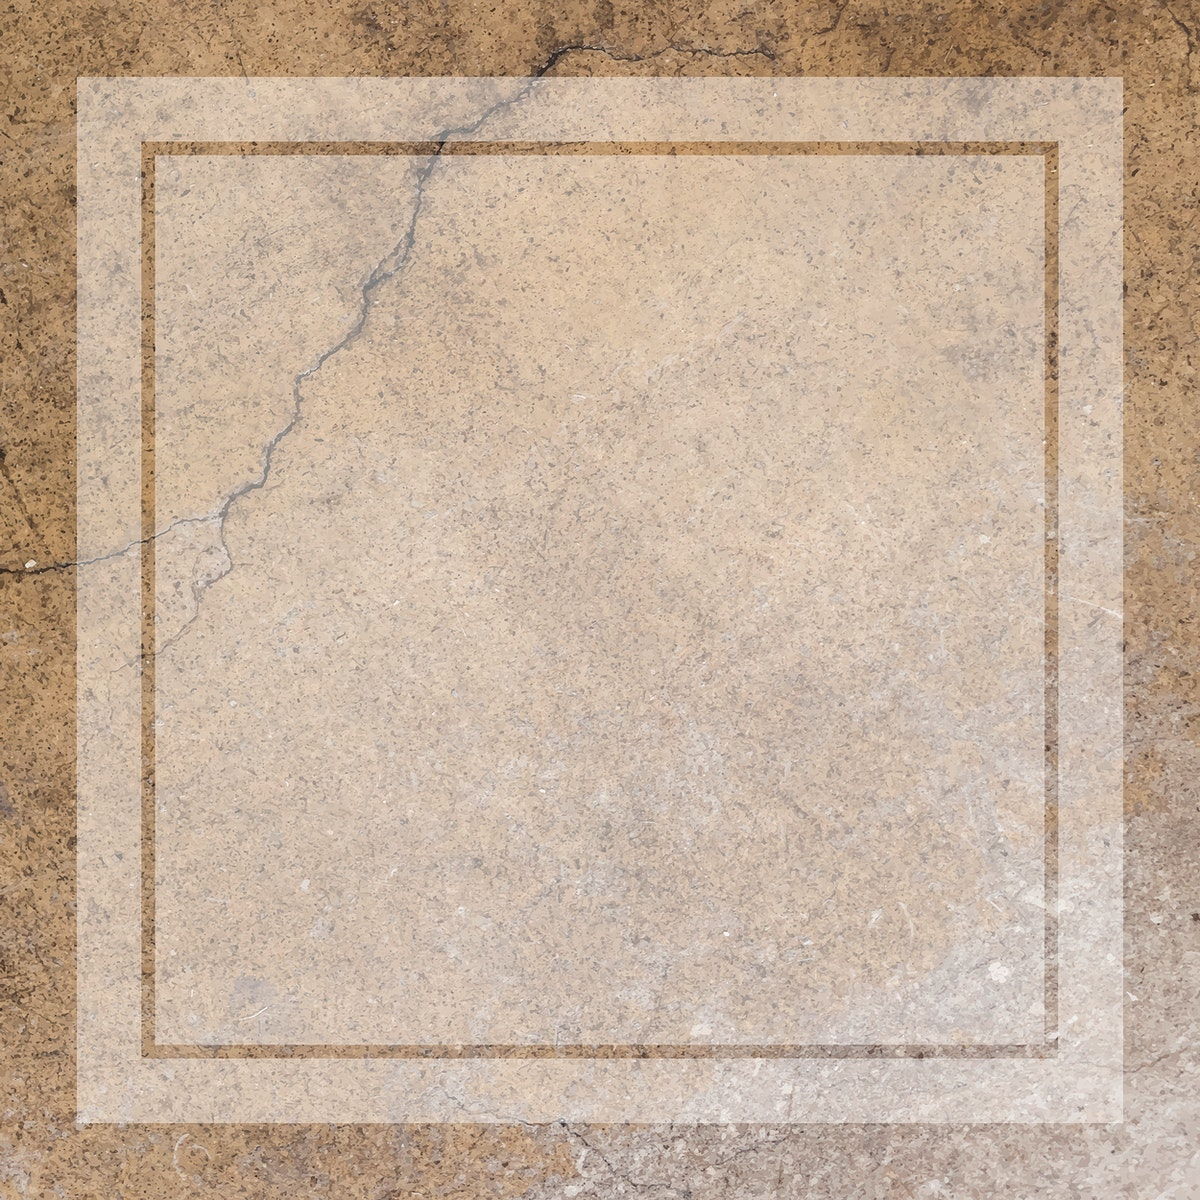 Blank transparent frame on an aged brown concrete wall vector